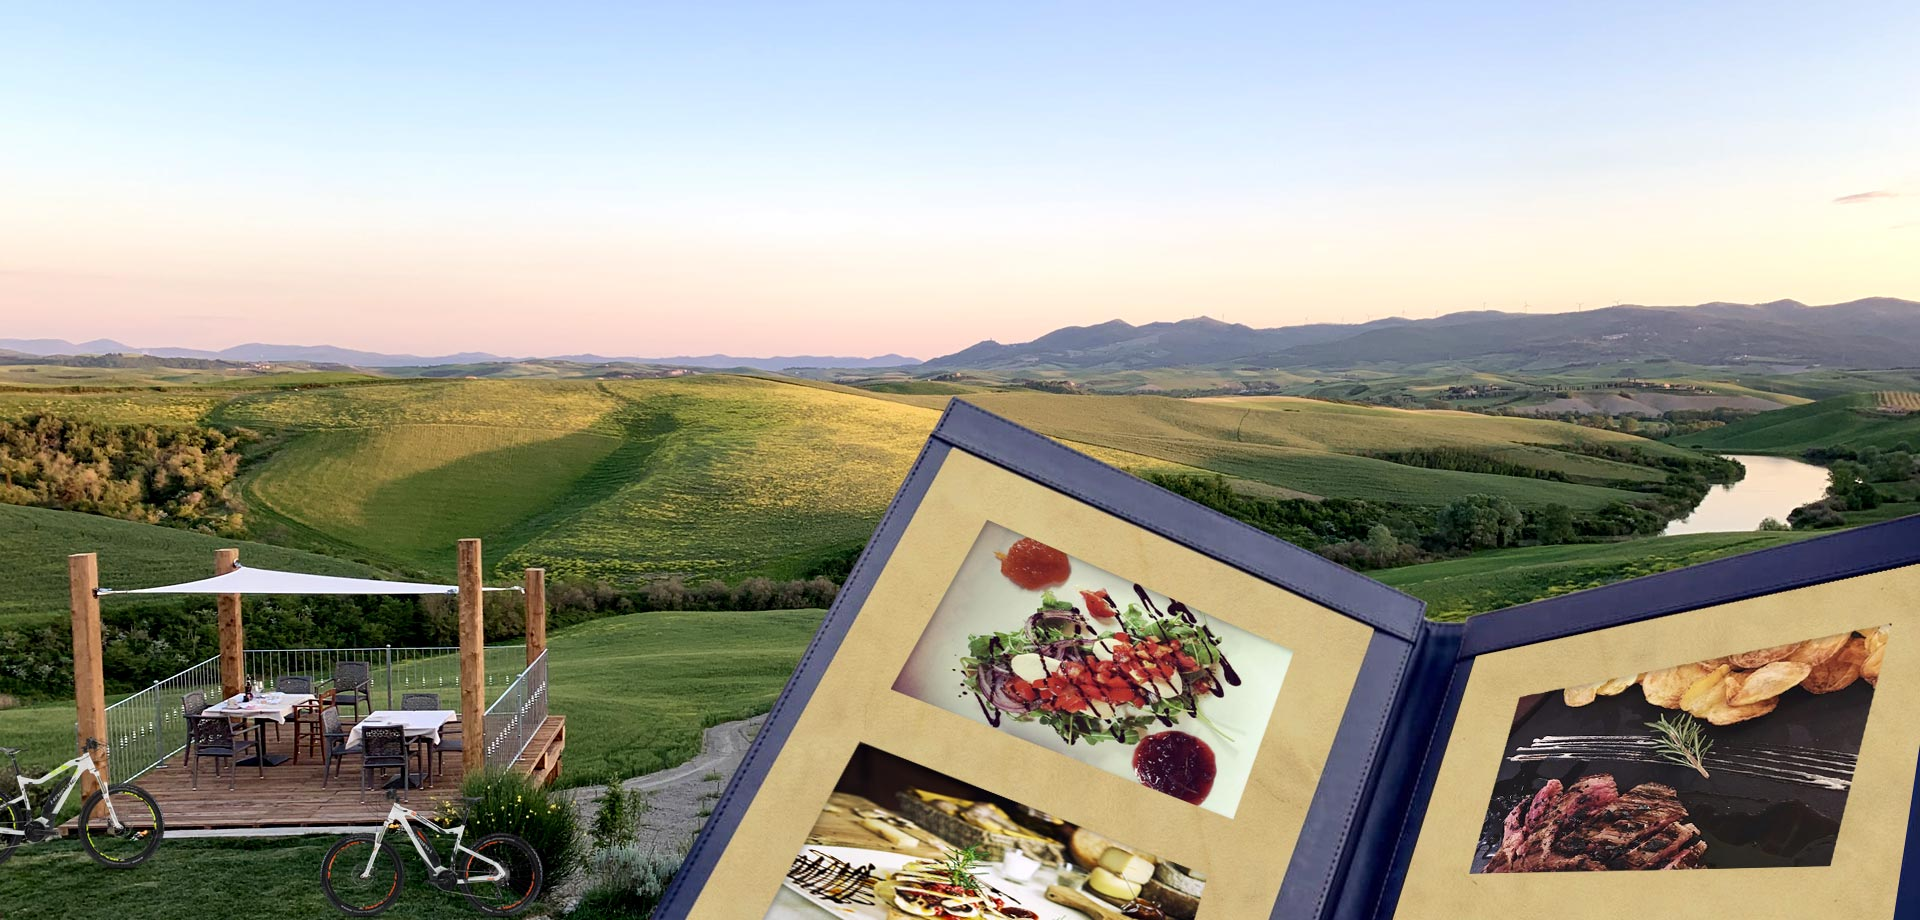 Biking Tuscany Tour - Food and wine tour